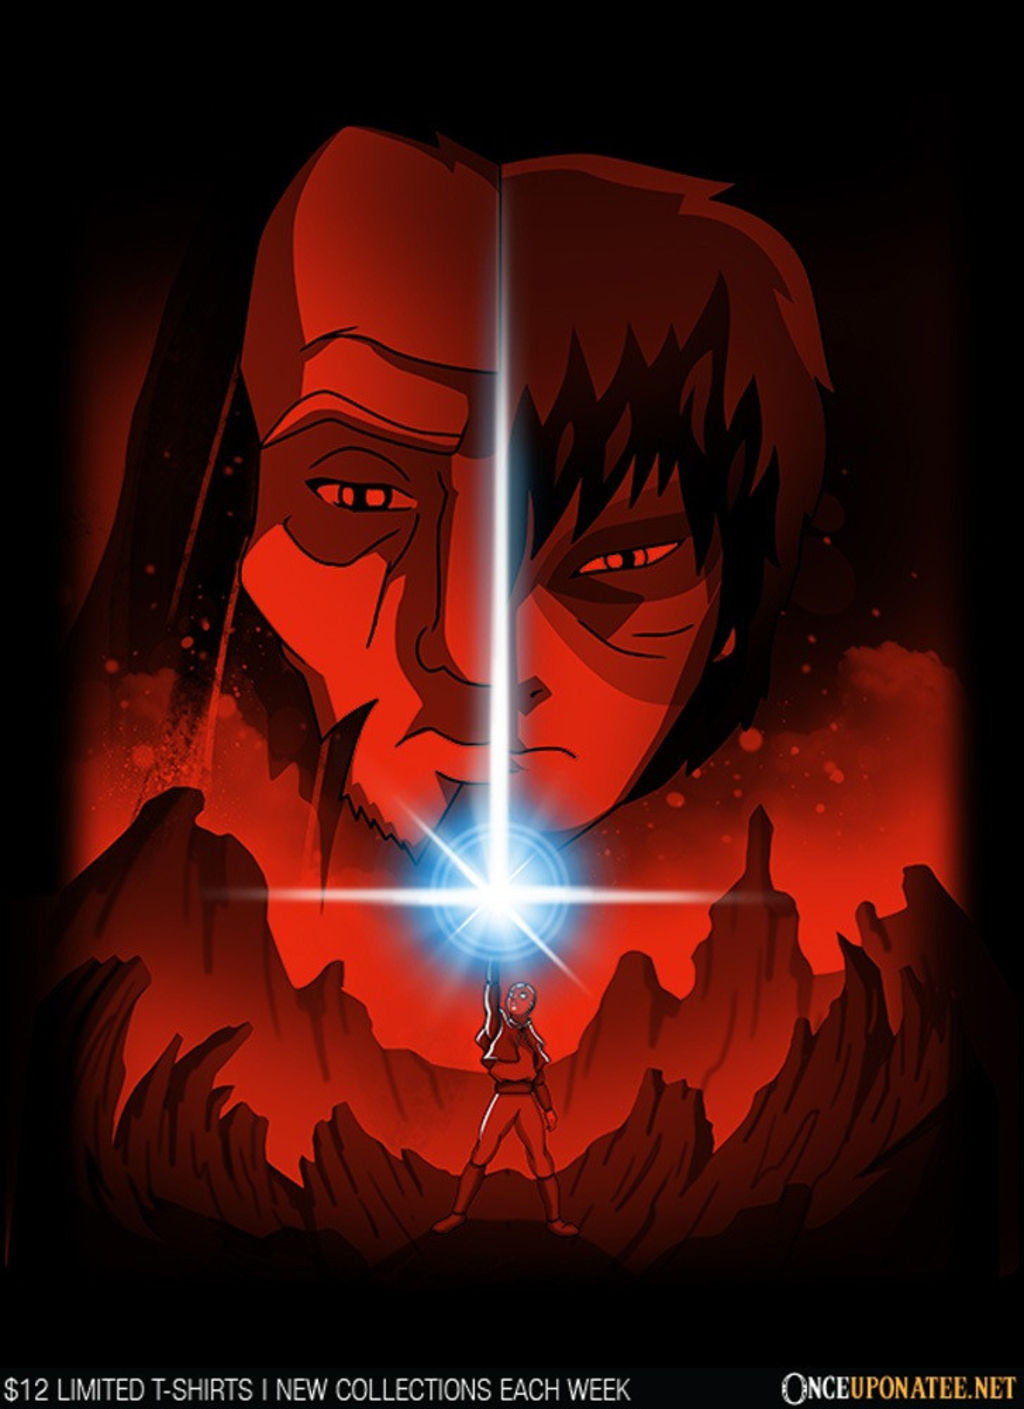 Once Upon a Tee: The Last Avatar